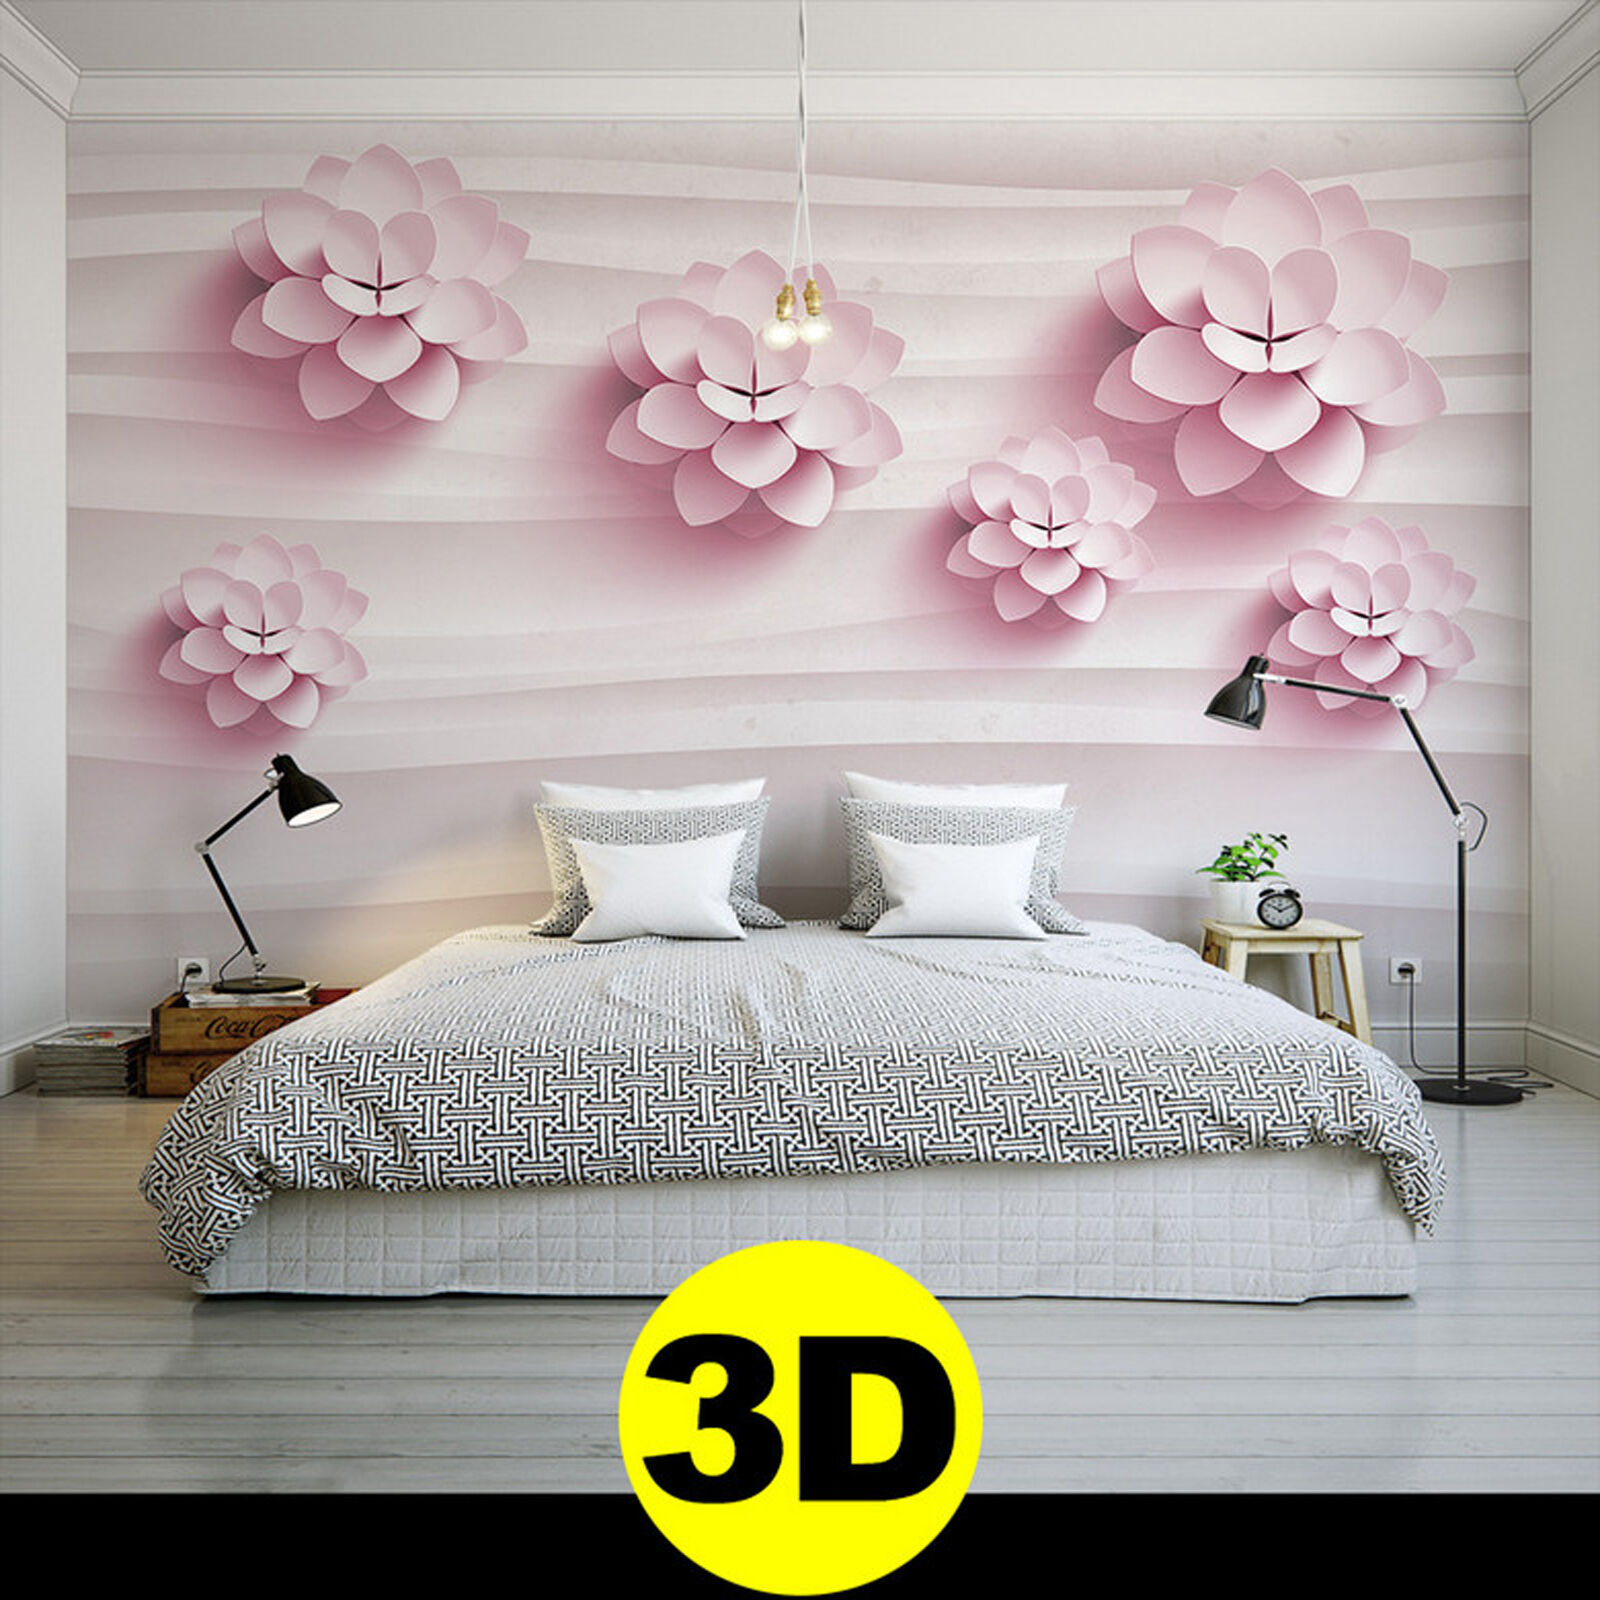 vlies fototapeten wandbilder 3d blume vlies tapeten 1145. Black Bedroom Furniture Sets. Home Design Ideas